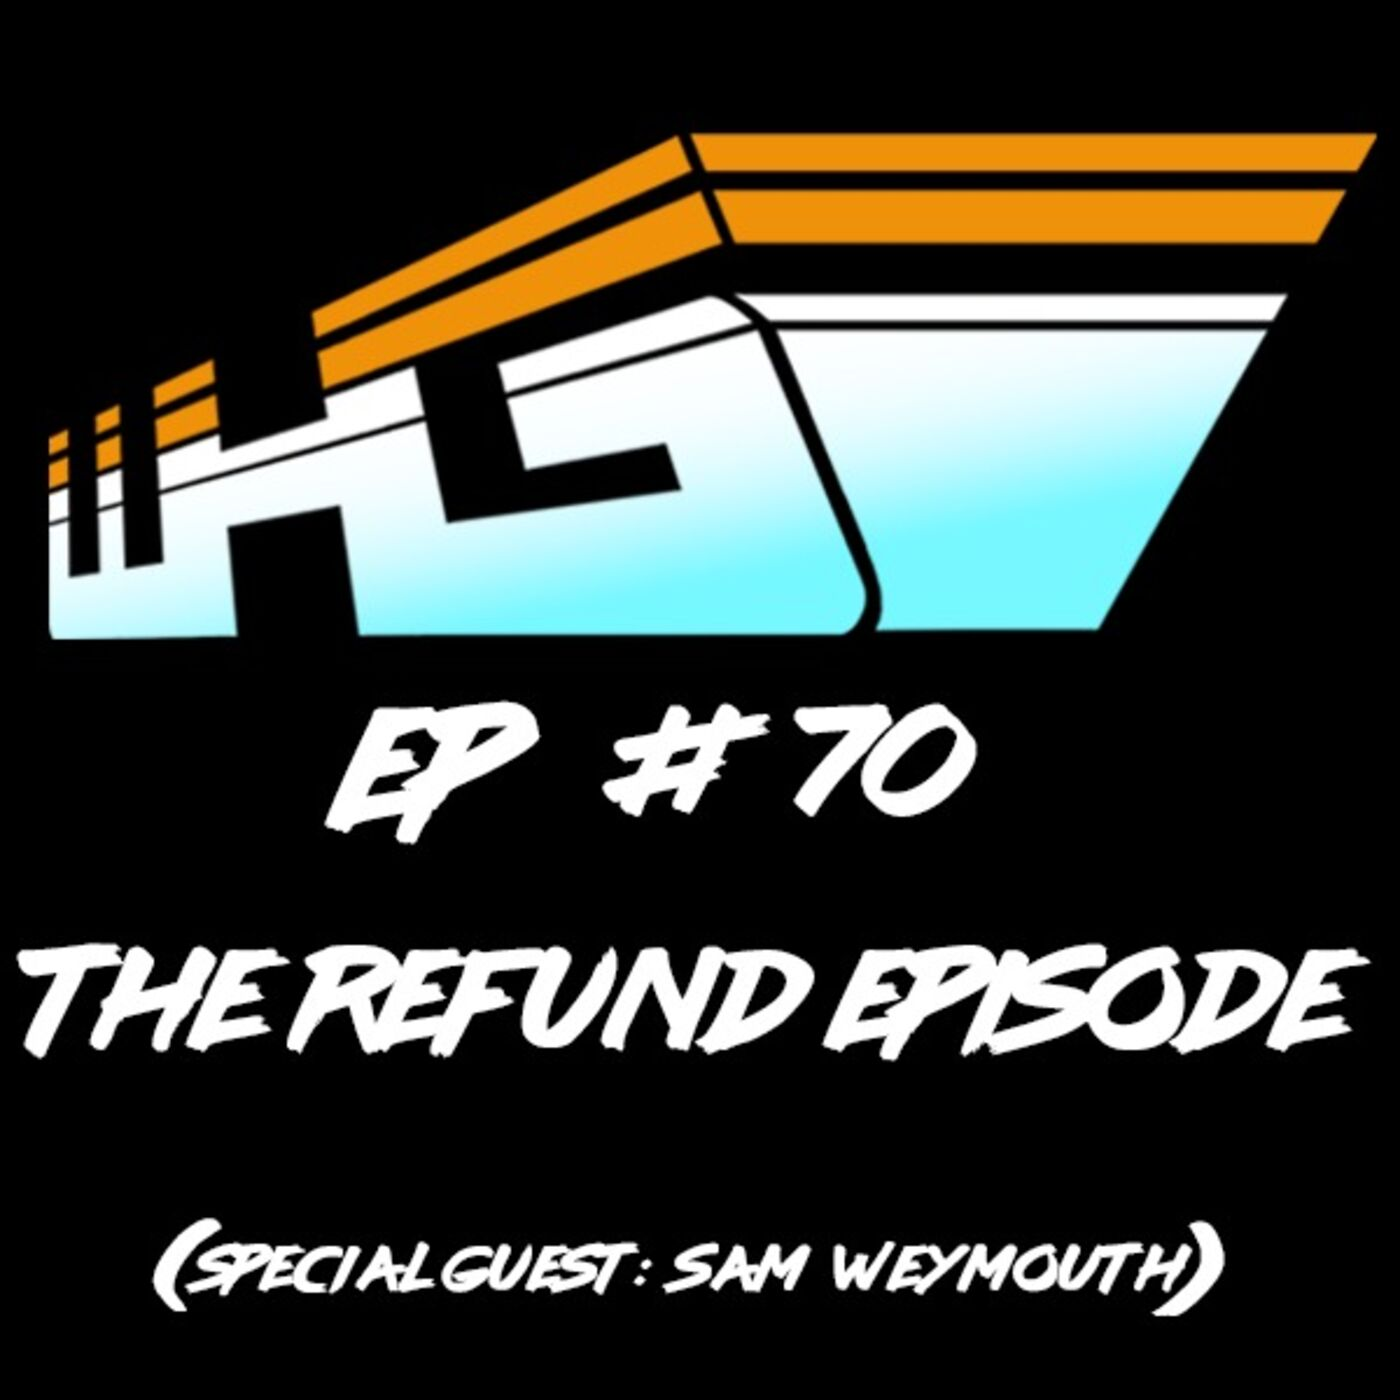 The Refund Episode (Special Guest: Sam Weymouth)